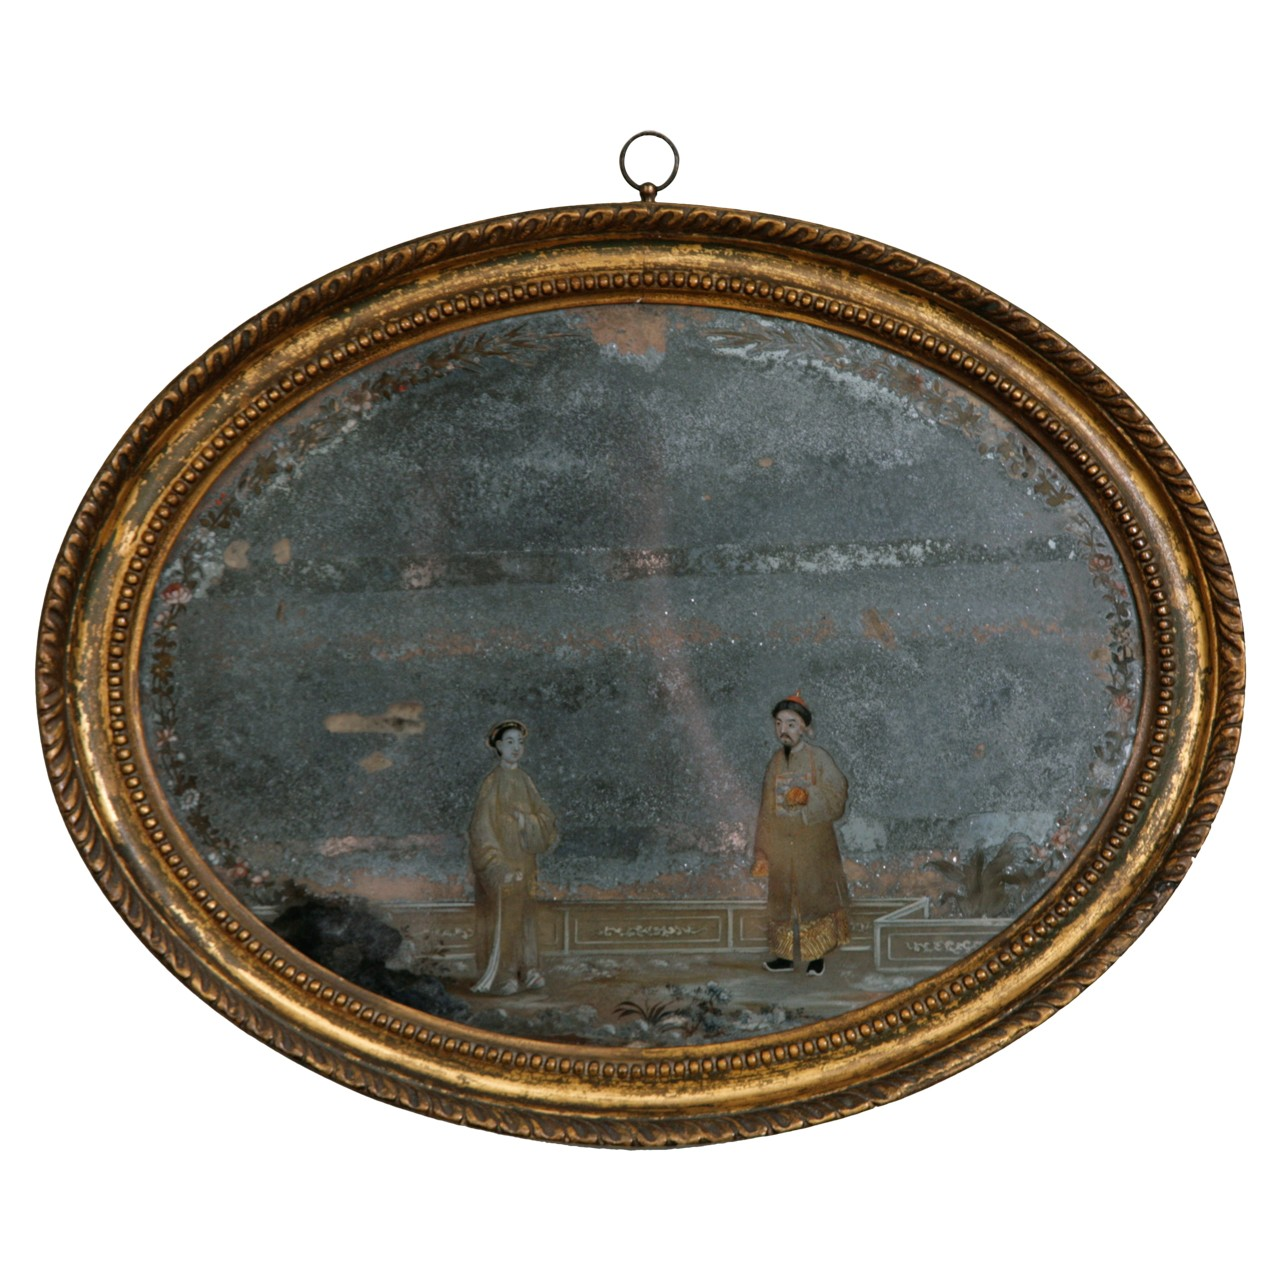 Oval Chinese Export mirror painting, 18th century, offered by Jamb Ltd.